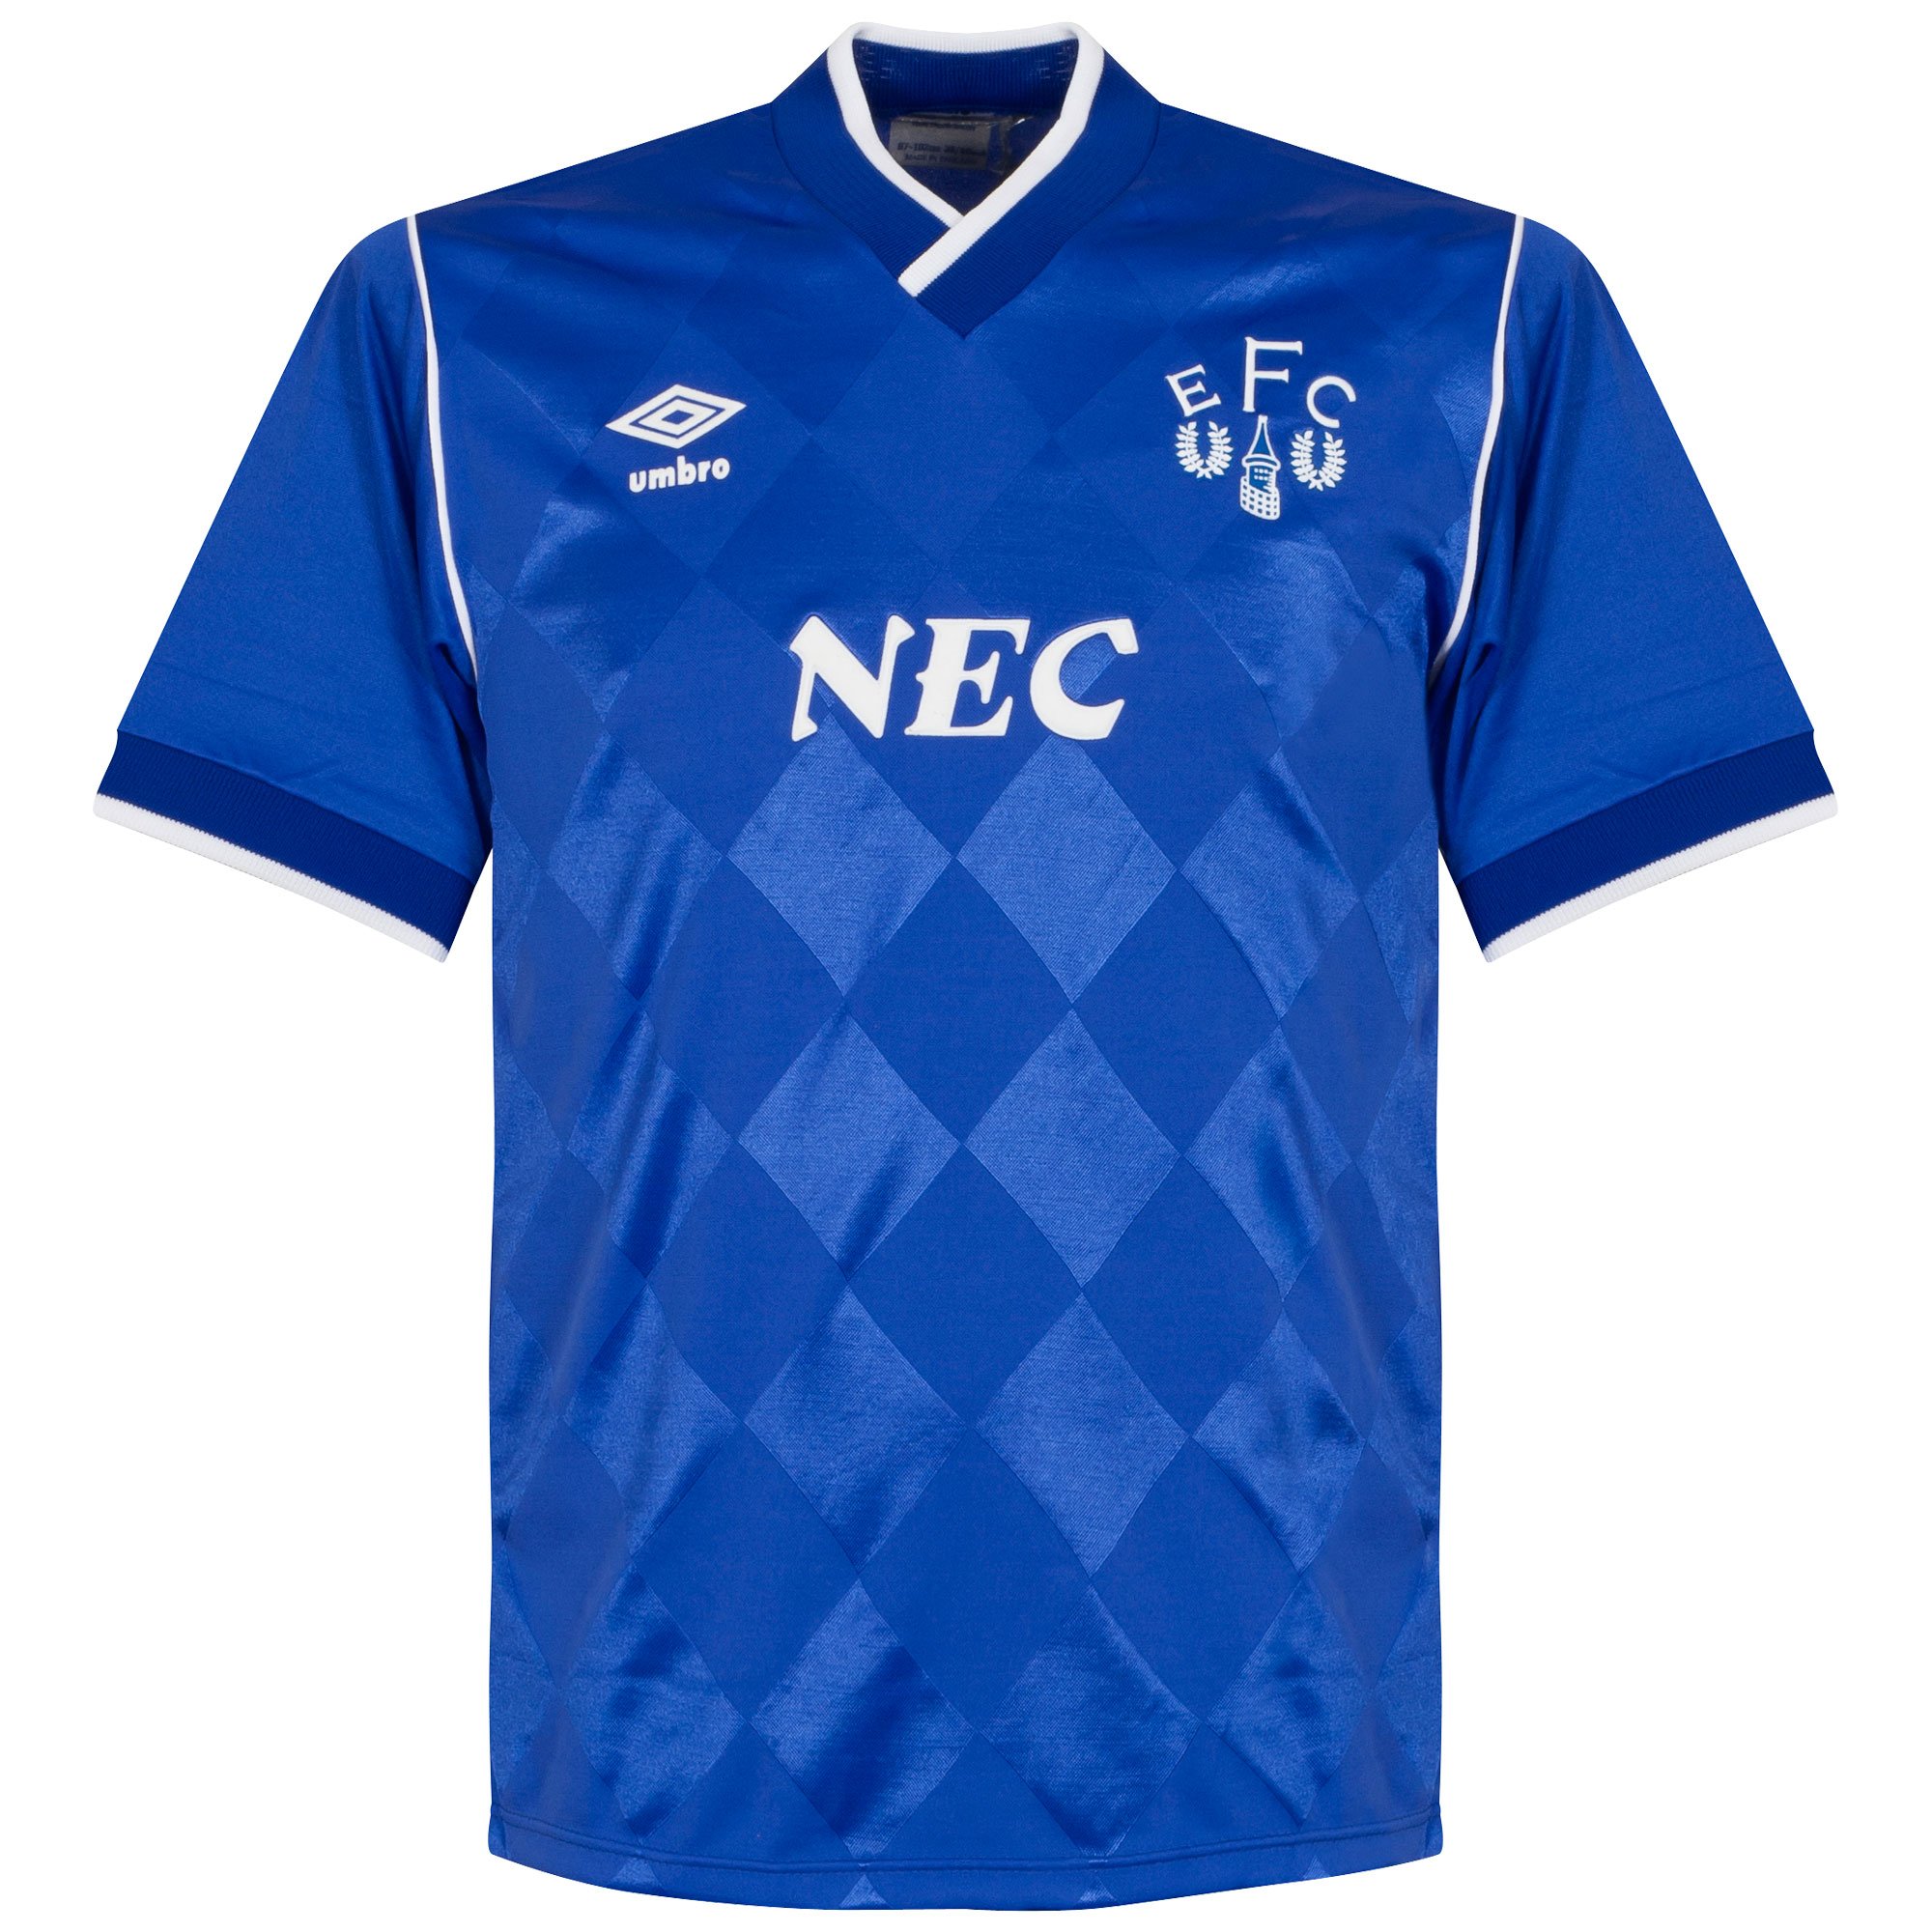 Umbro Everton 1986-1989 Home Shirt - Like NEW Condition - Size M